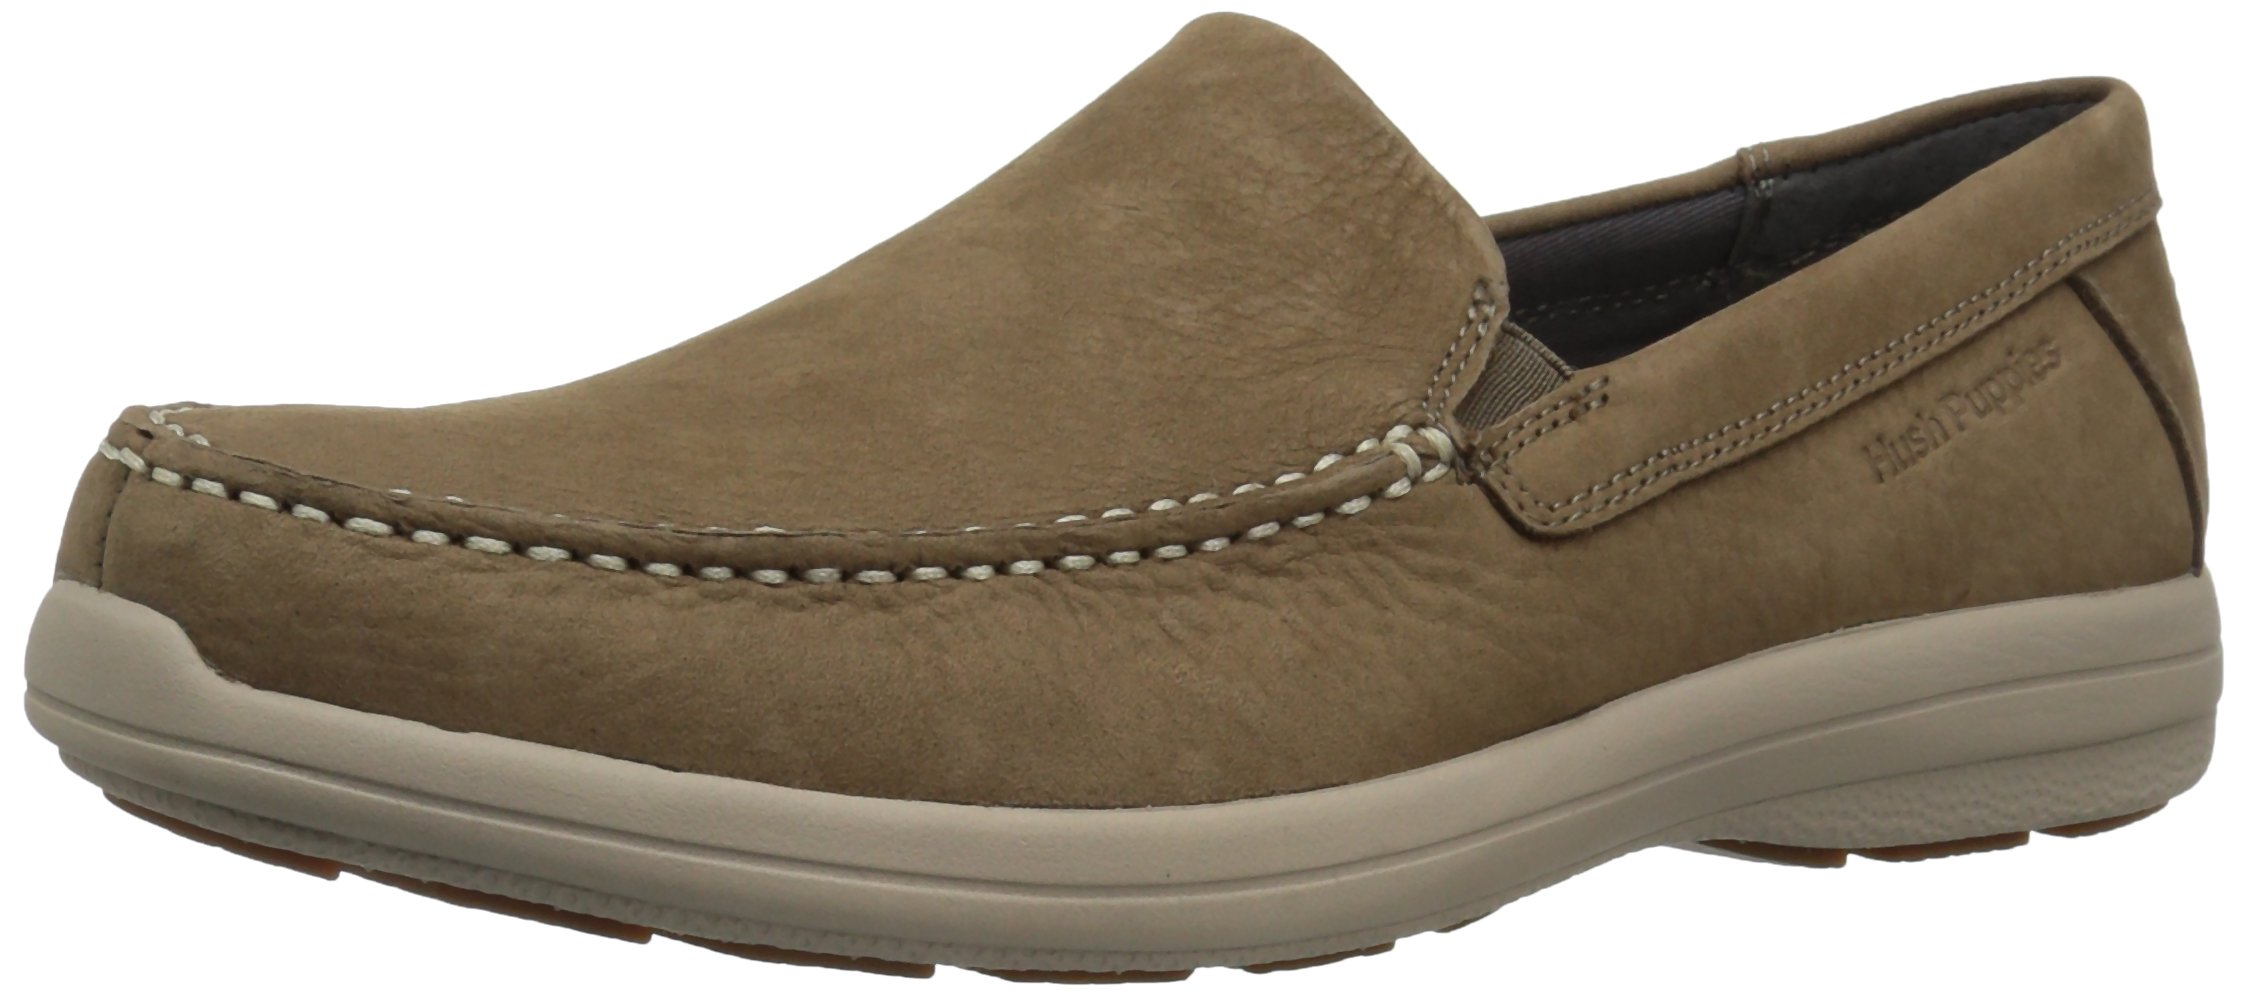 Hush Puppies Men's Brevis Patterson Slip-on Loafer, Taupe, 9.5 M US